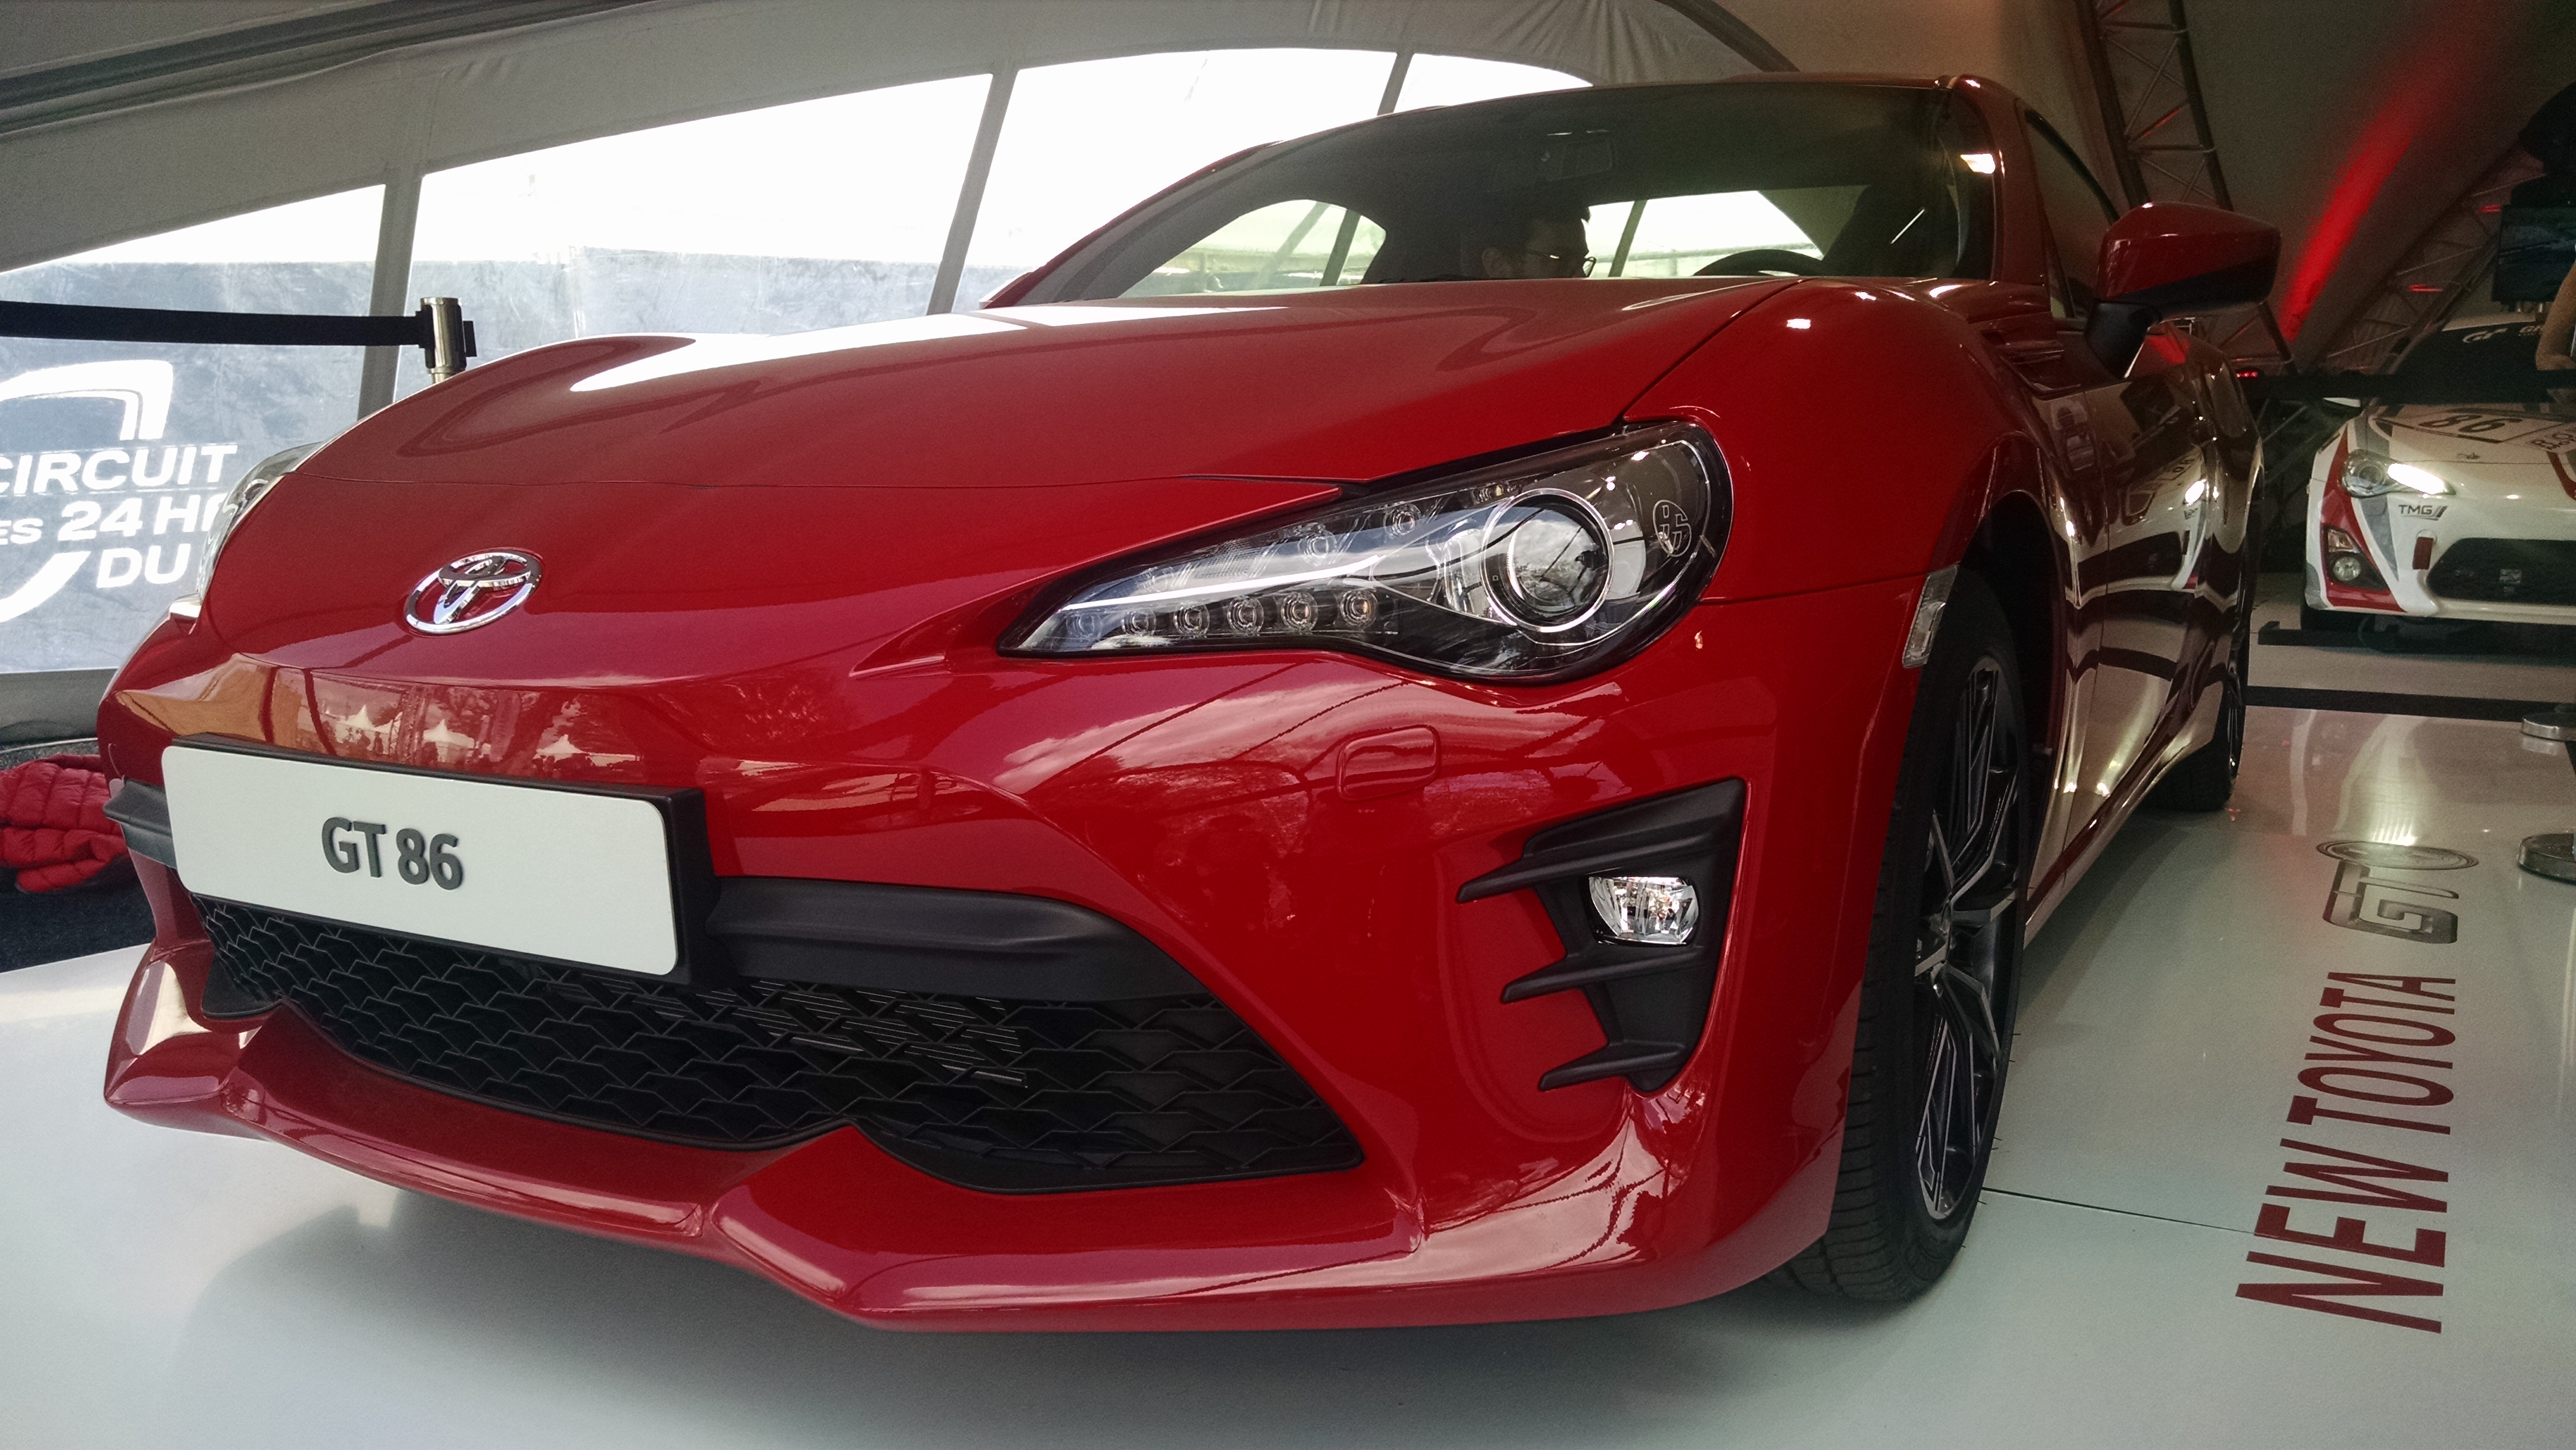 dcouverte vido toyota gt86 restyle volutions passion discrtion